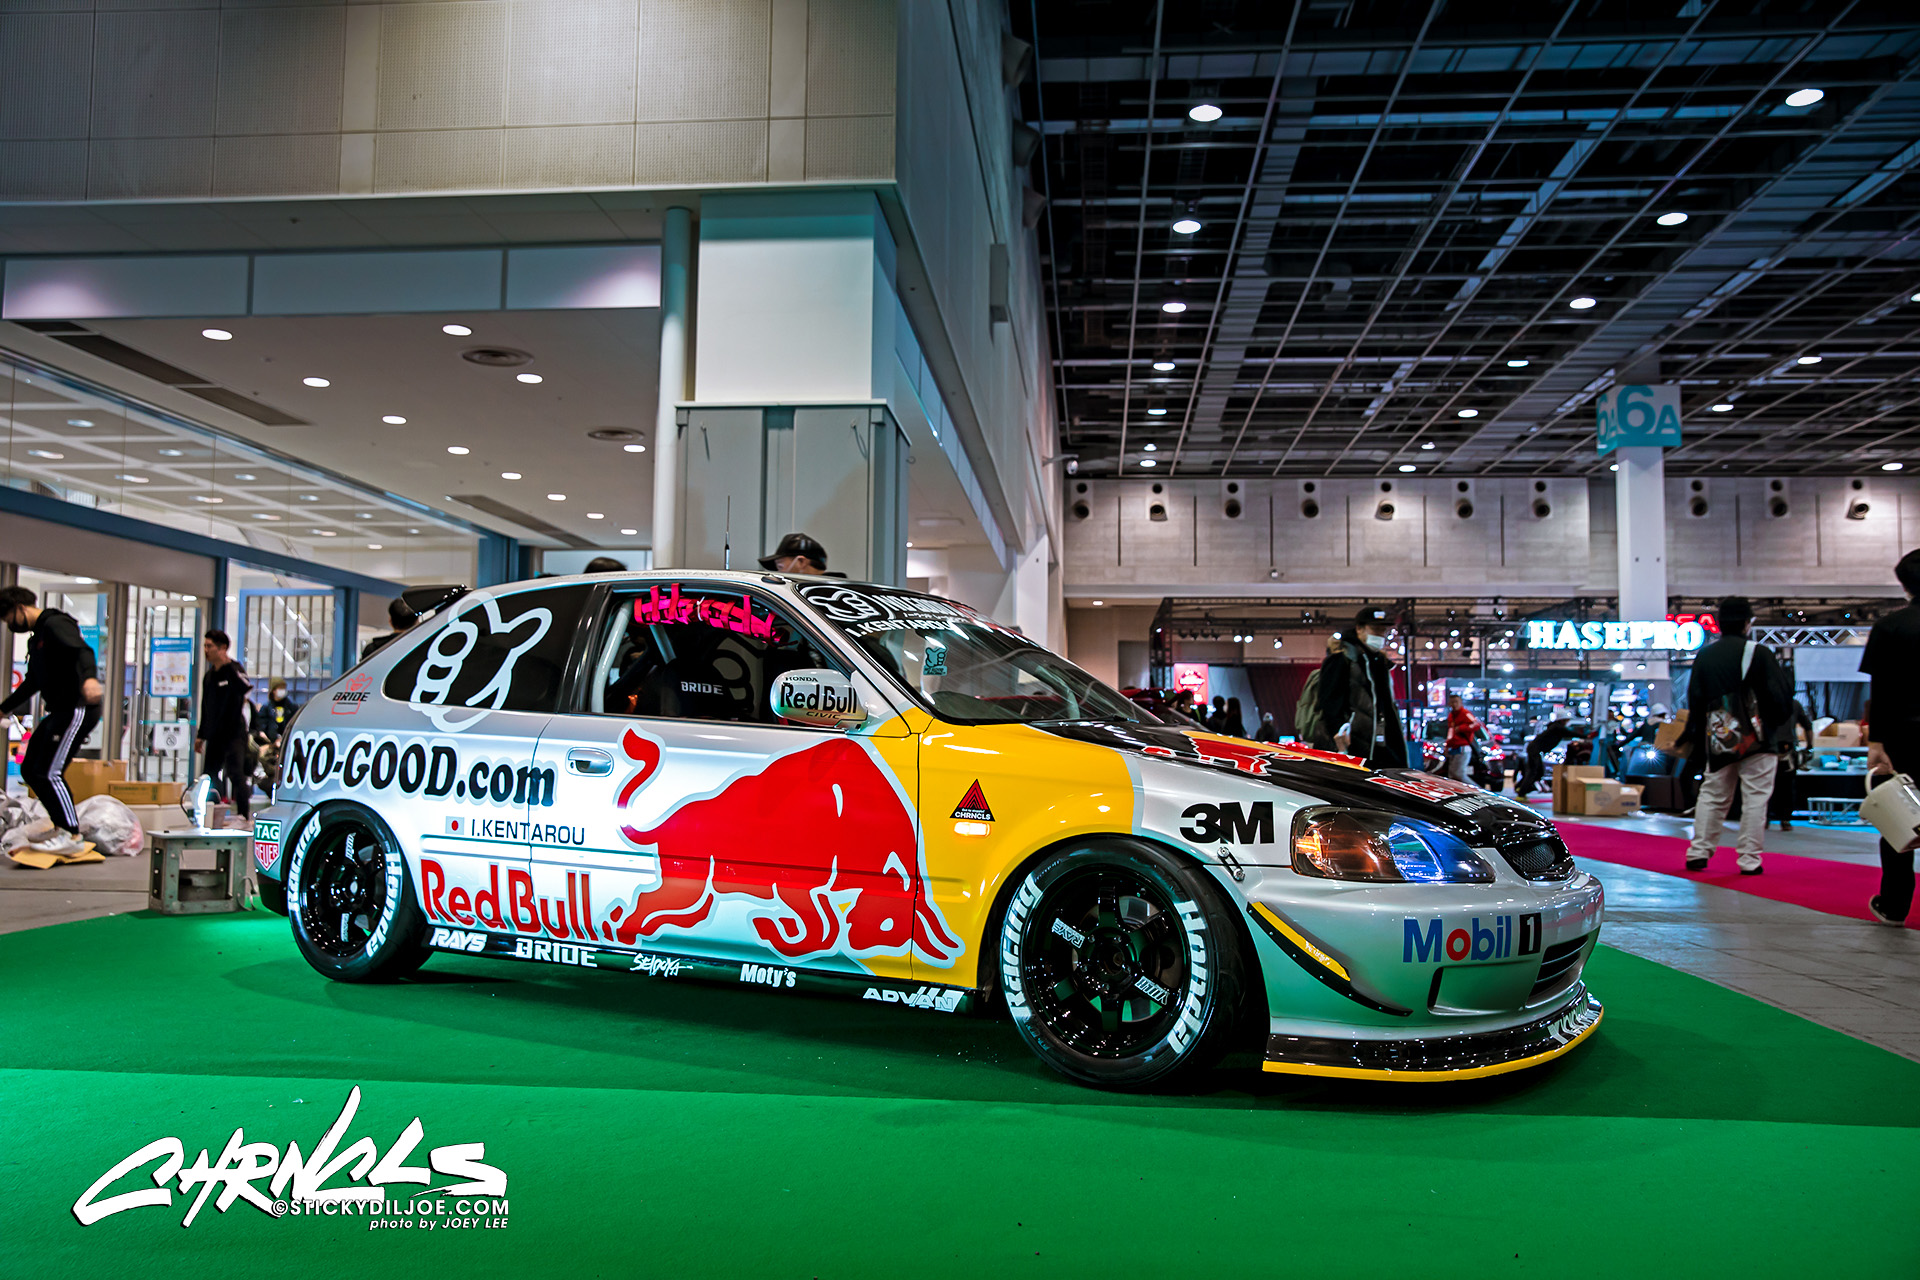 Osaka Auto Messe With No Good Racing…CHRNCLS Vlog 2020 #6